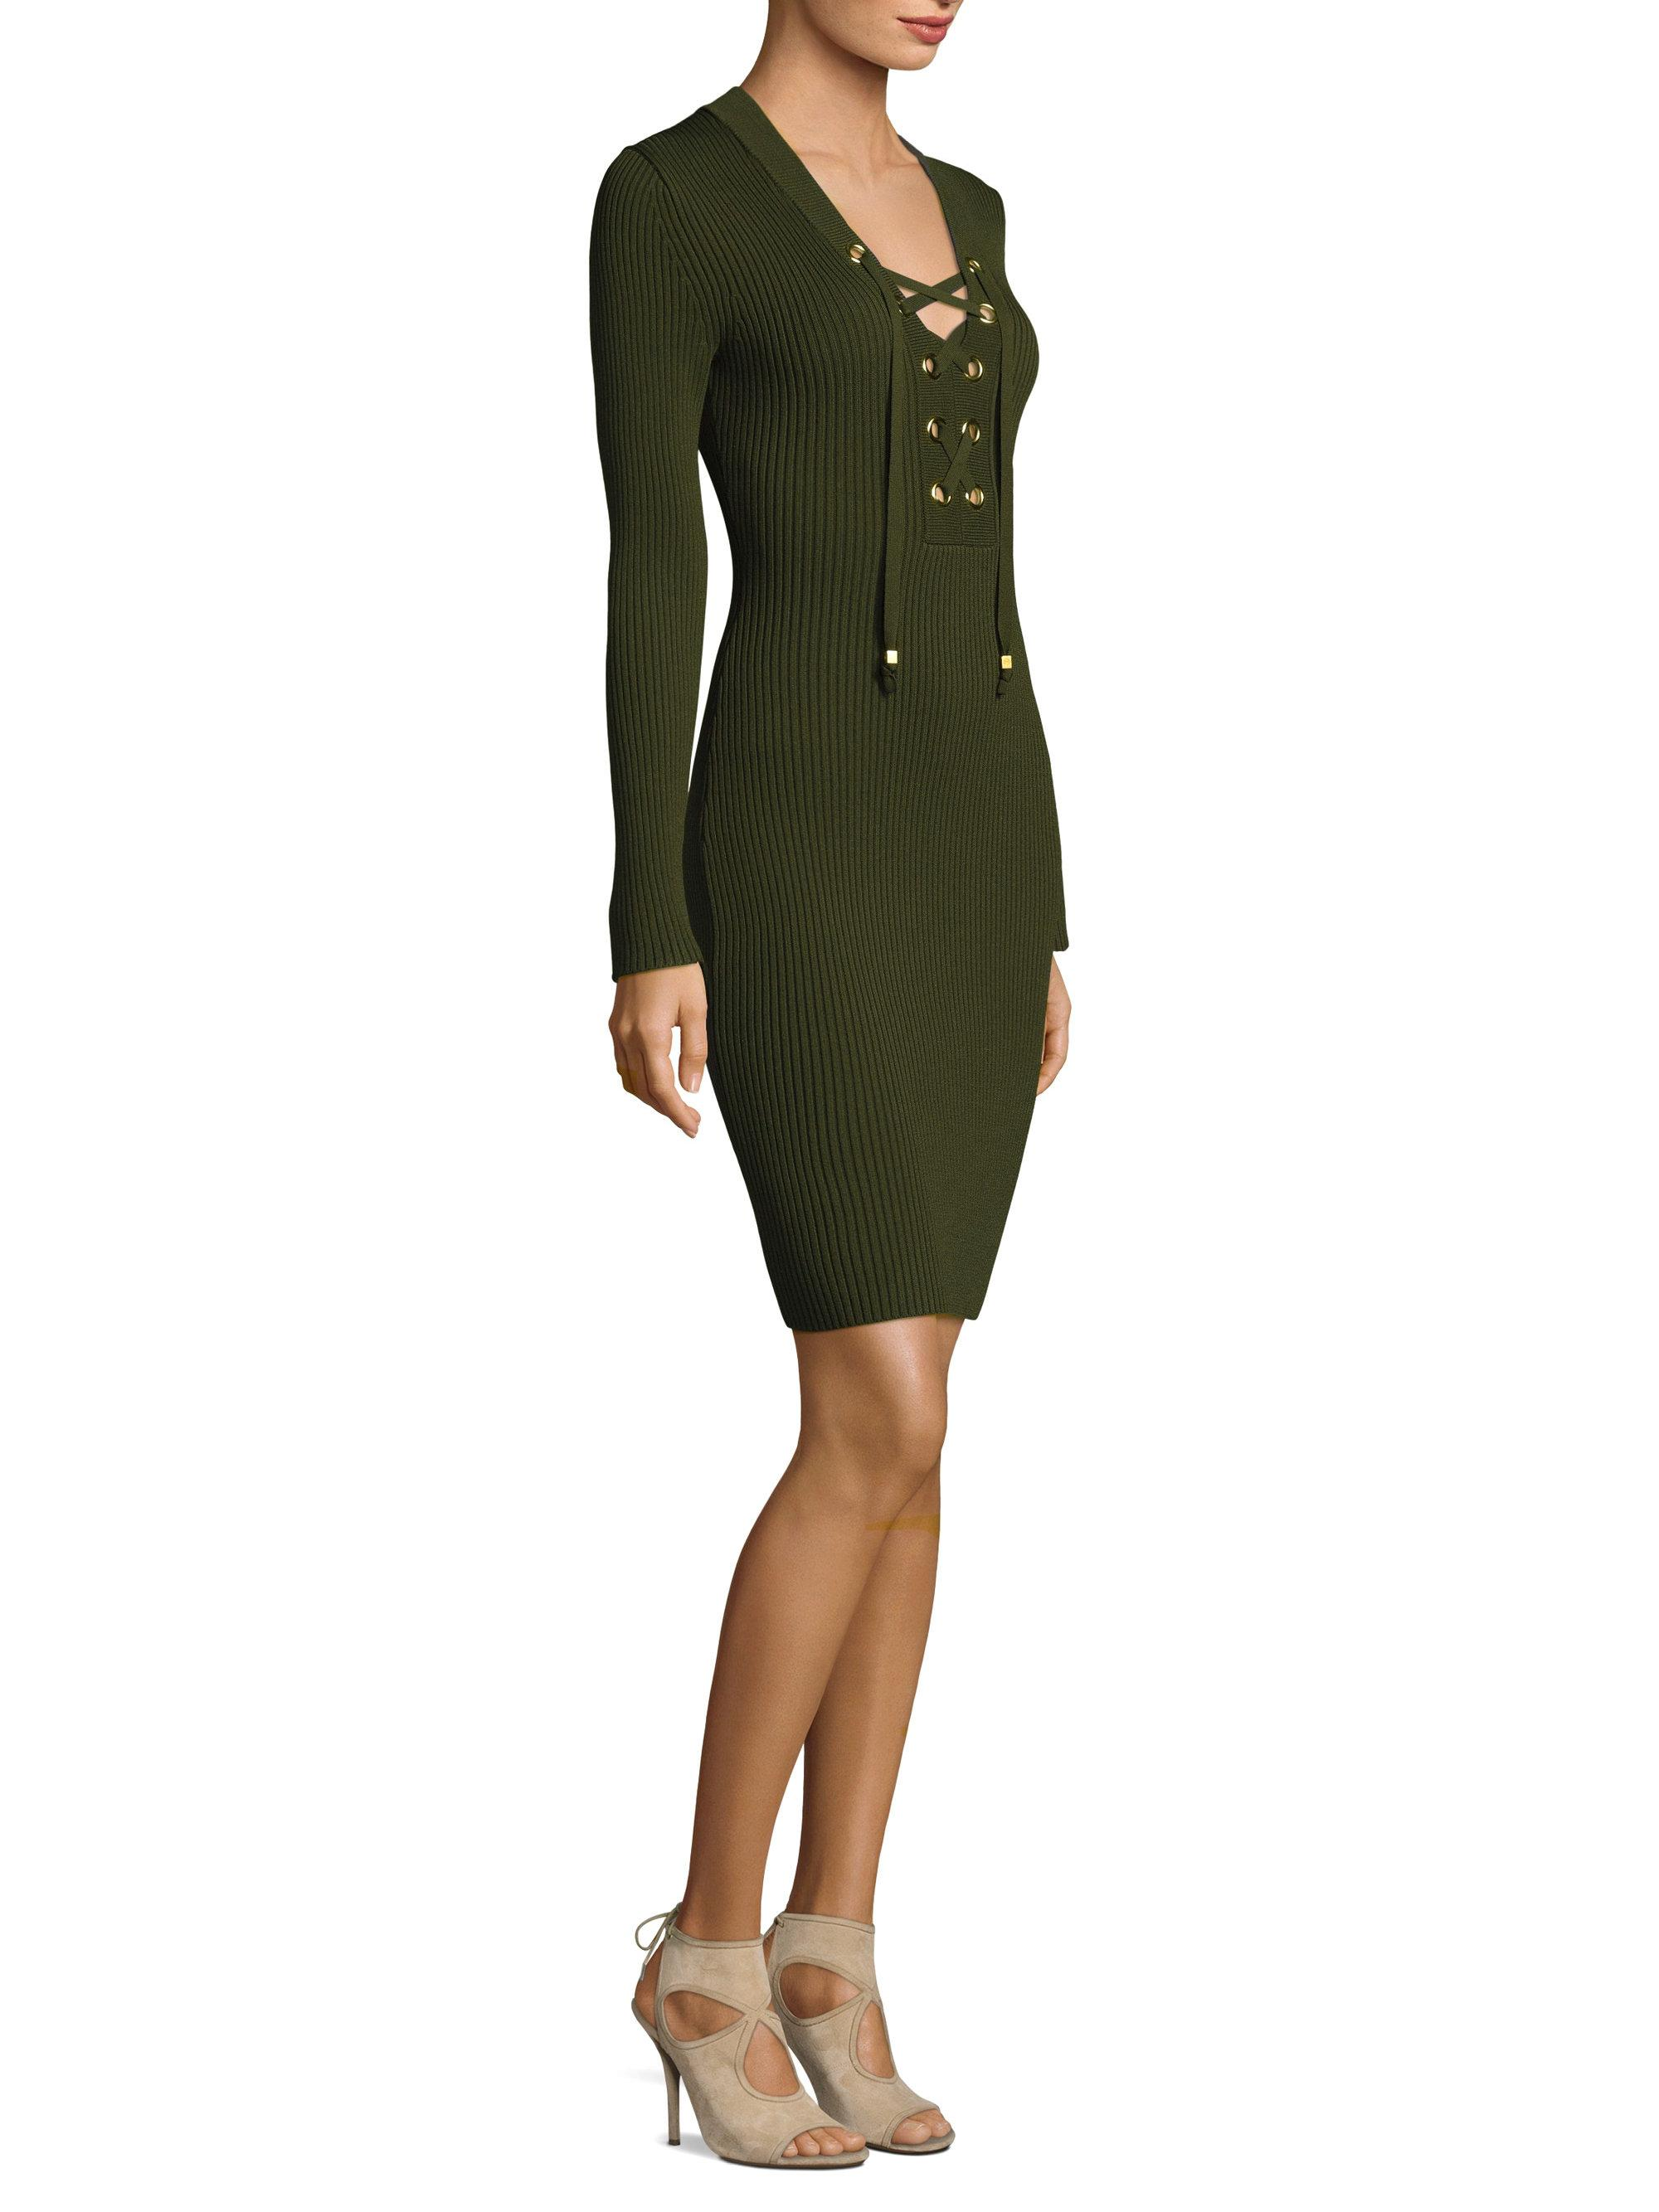 333e056252 Lyst - MICHAEL Michael Kors Lace-up Rib Bodycon Dress in Green